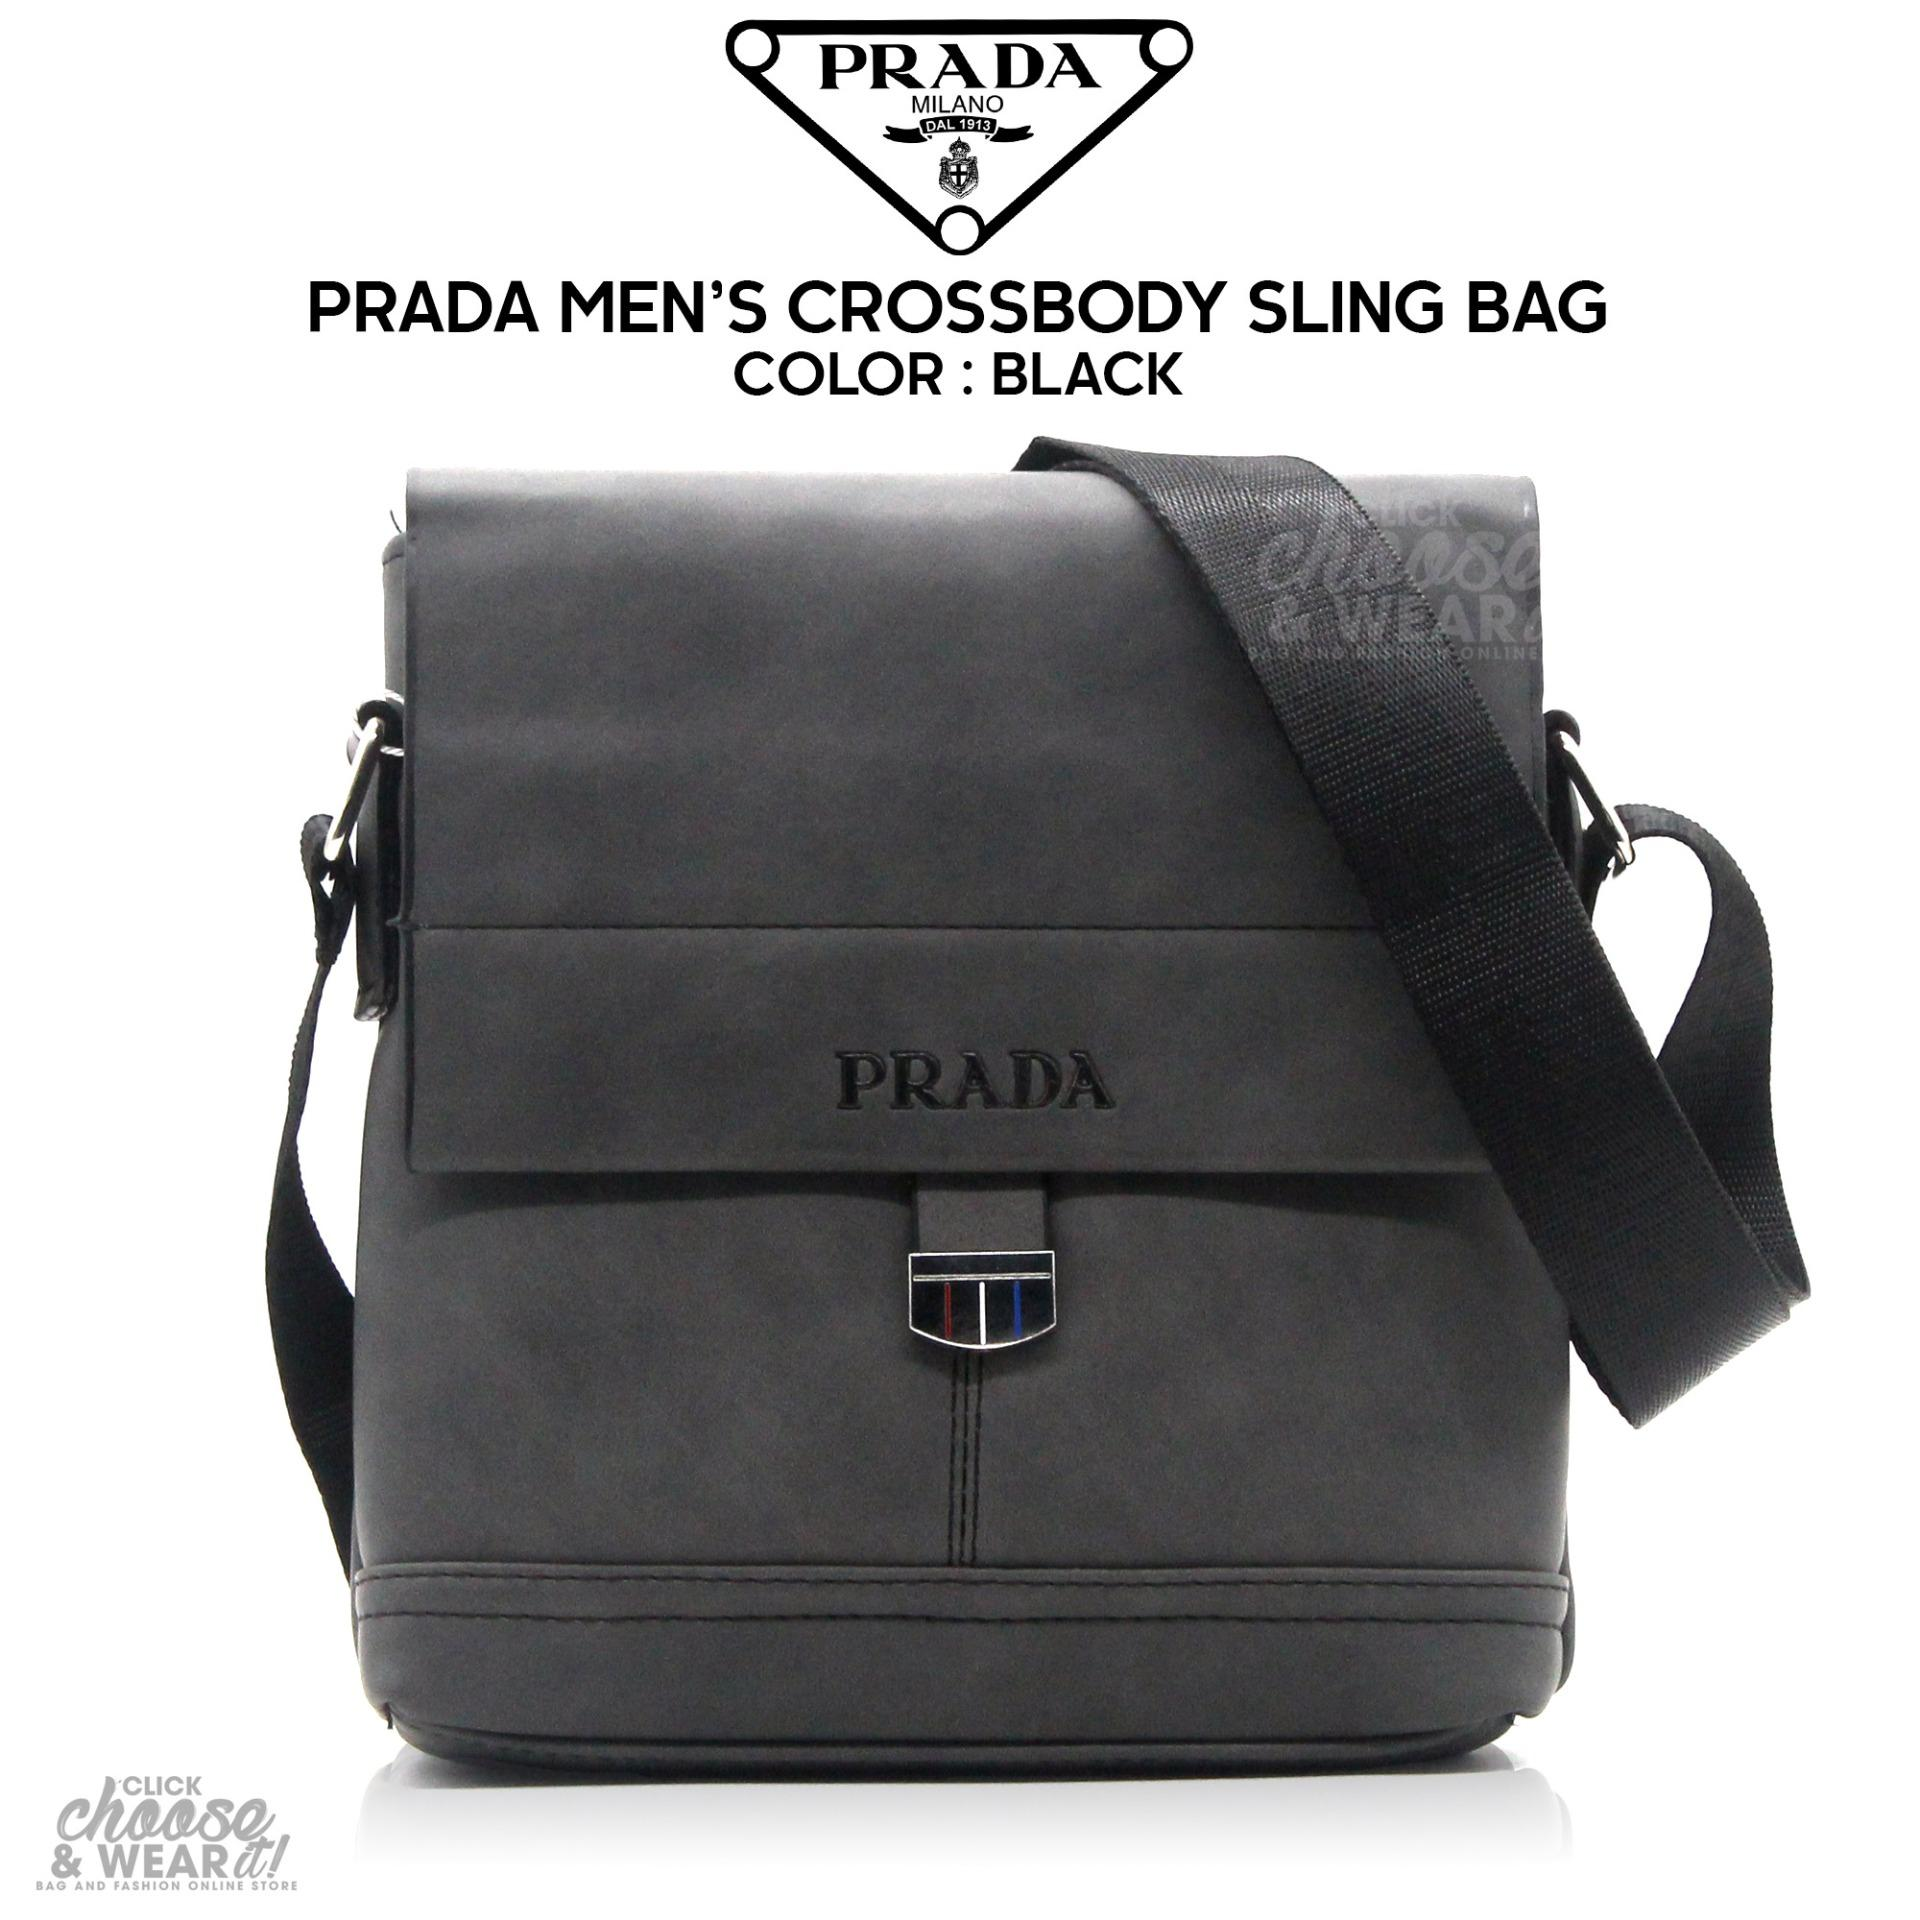 ... uk prada crossbody messenger bag magnetic closure adjustable strap  black d725c 00f1a ... a47ae1fd47fb9